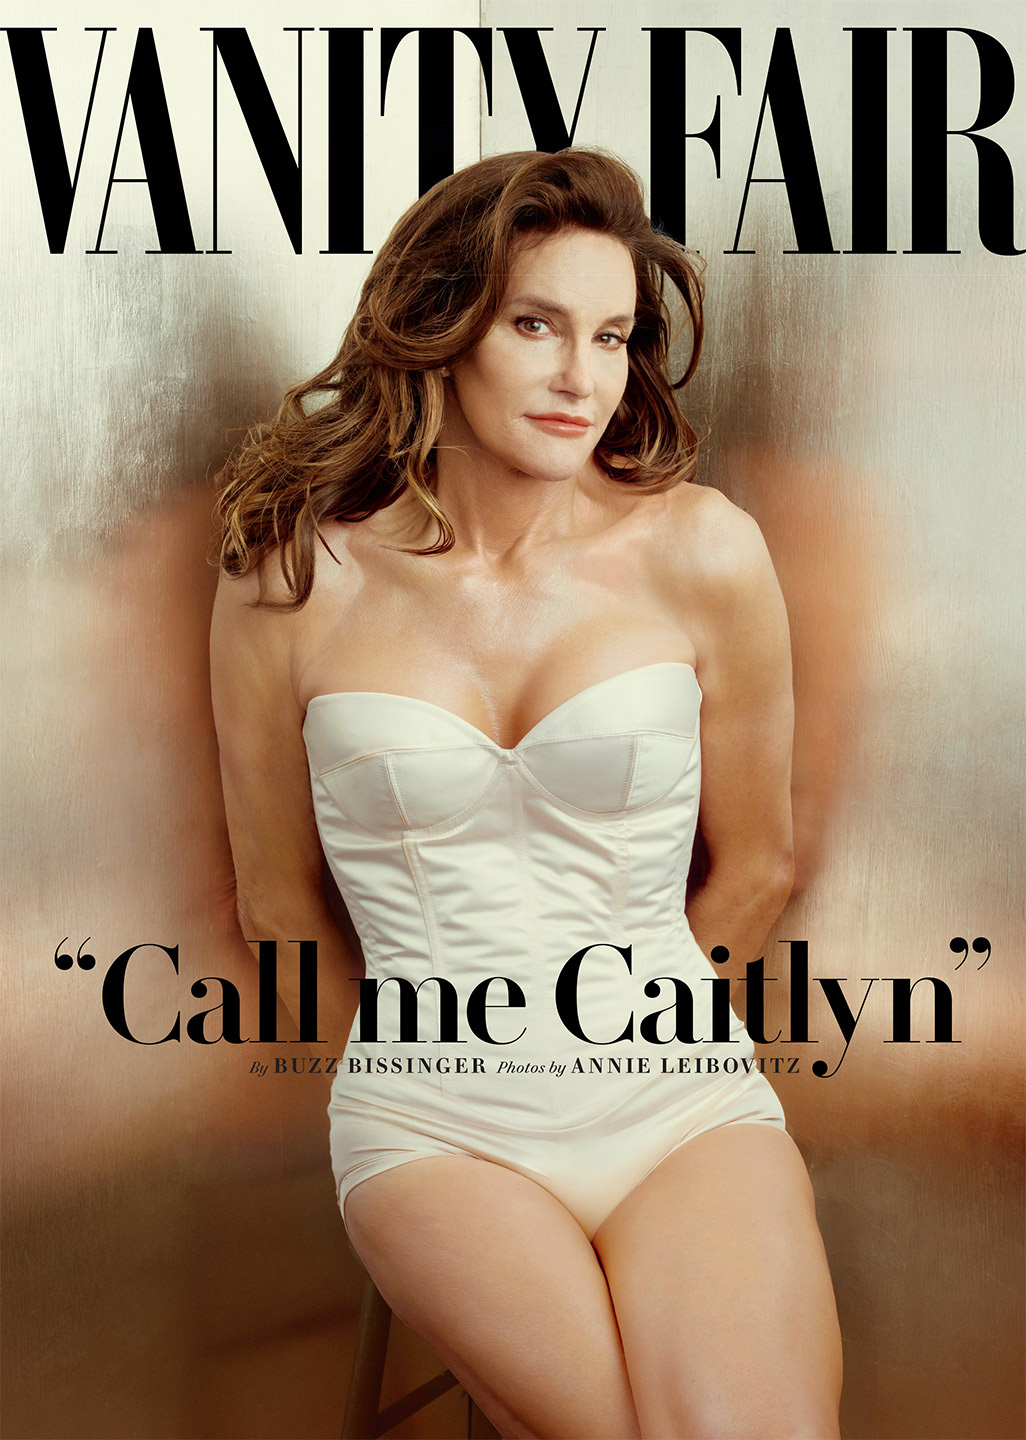 Photo meet caitlyn jenner the woman formerly known as bruce jenner